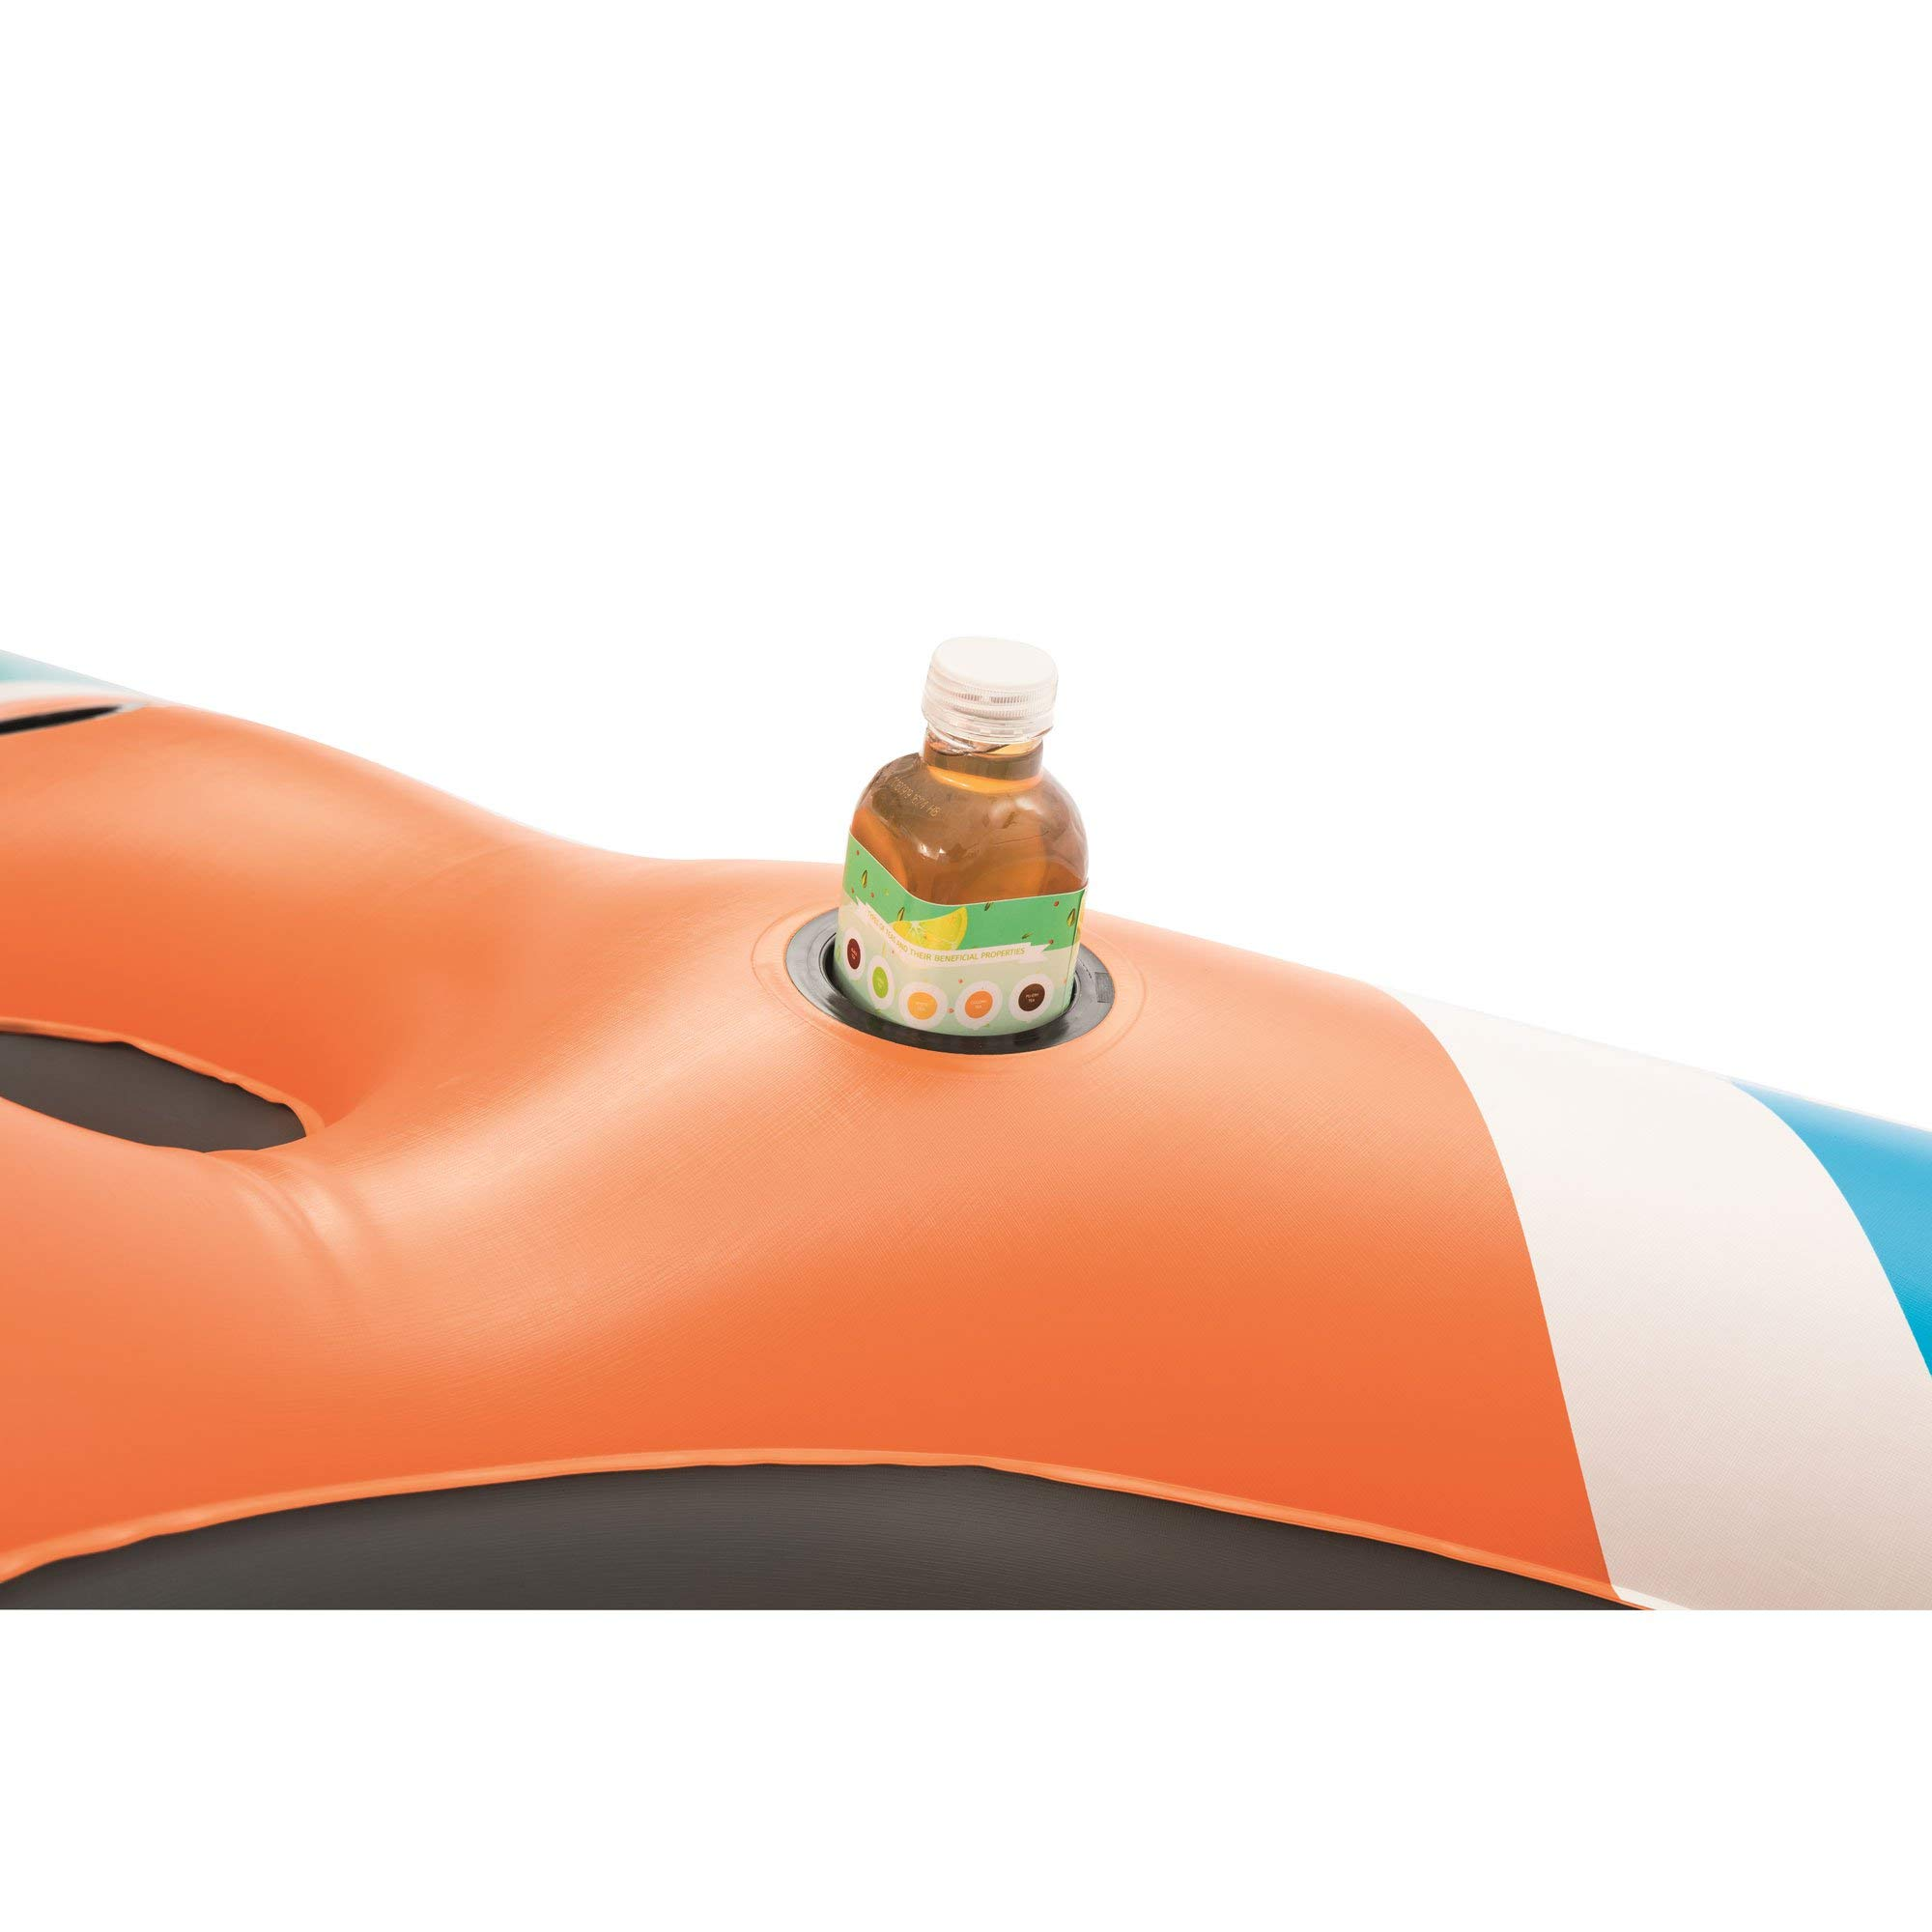 CoolerZ Rapid Rider X4 Inflatable 4-Person Island Tube by Bestway (Image #4)